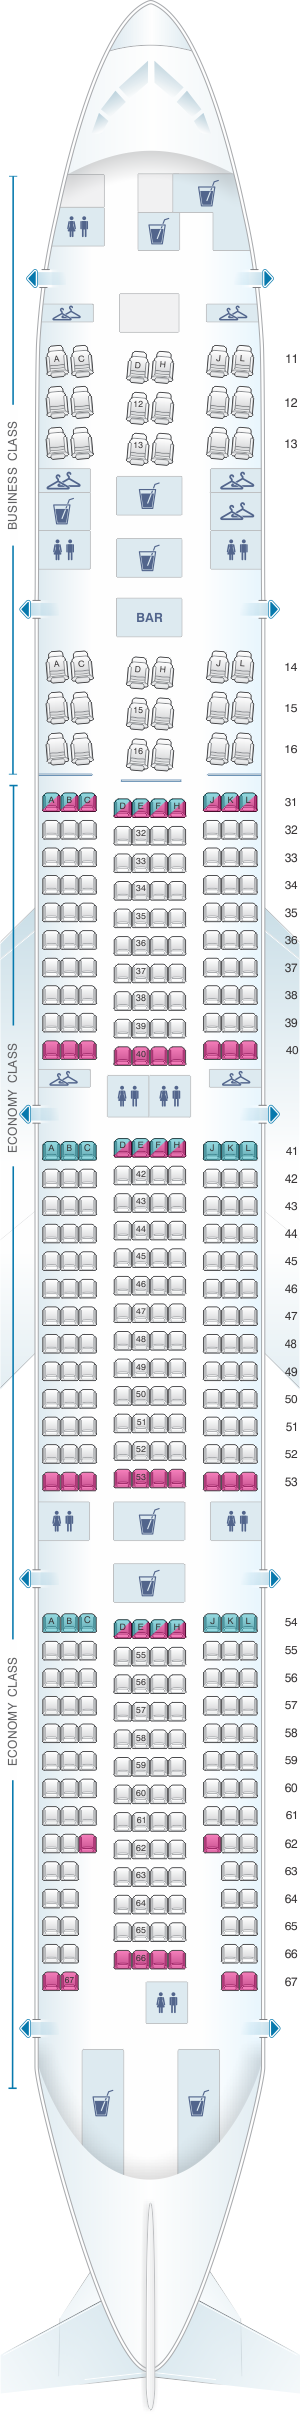 Seat map for Air China Boeing B777 300ER (392PAX)